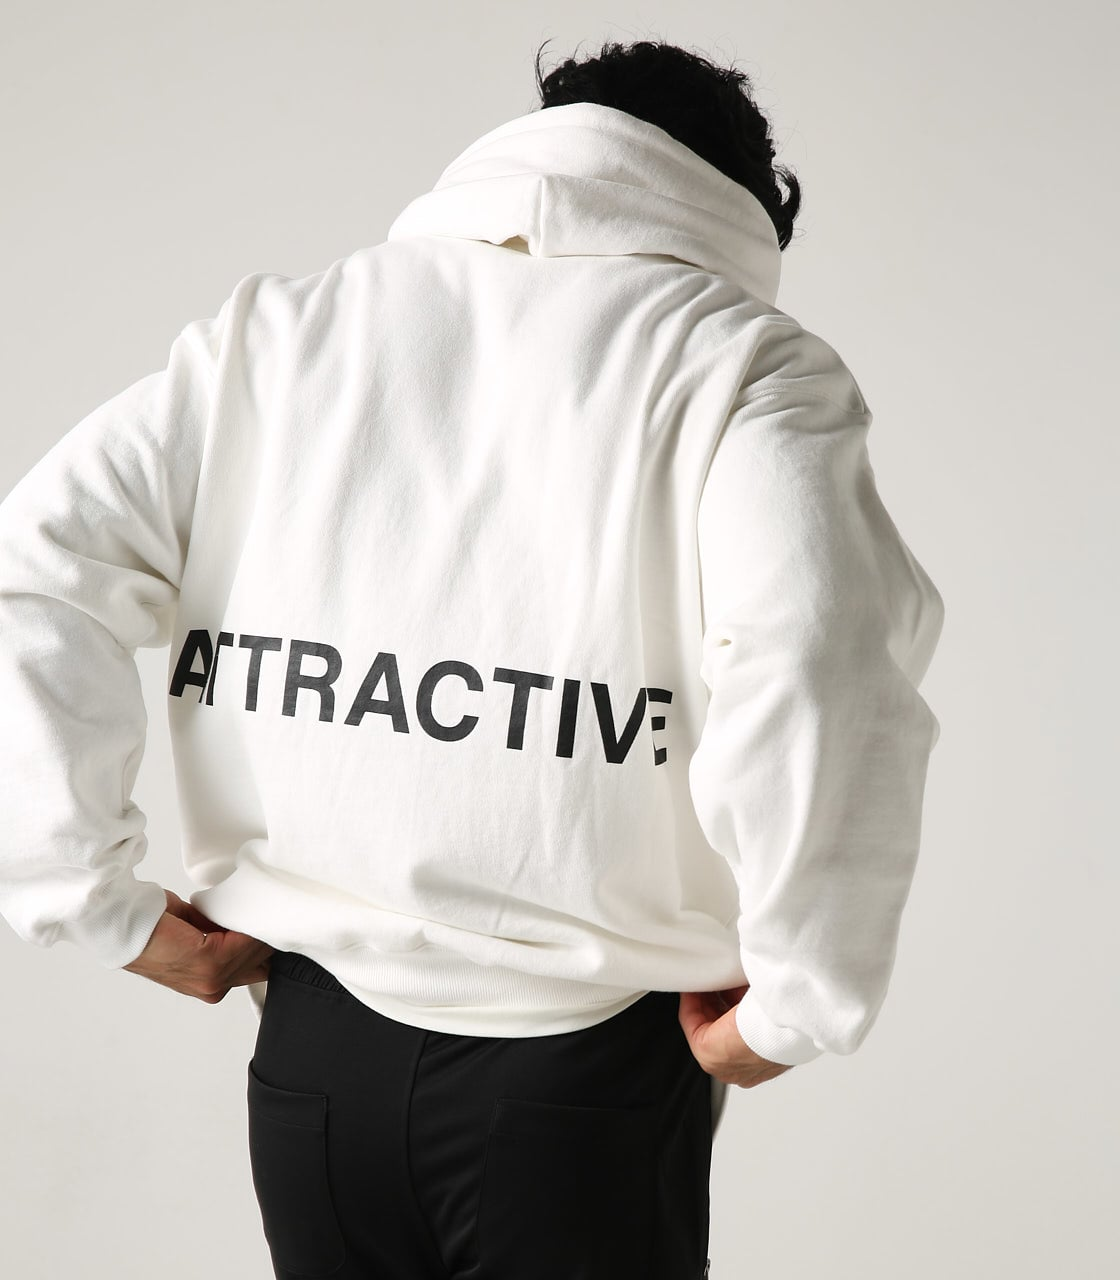 【AZUL BY MOUSSY】ATTRACTIVE ビッグパーカー 詳細画像 WHT 1